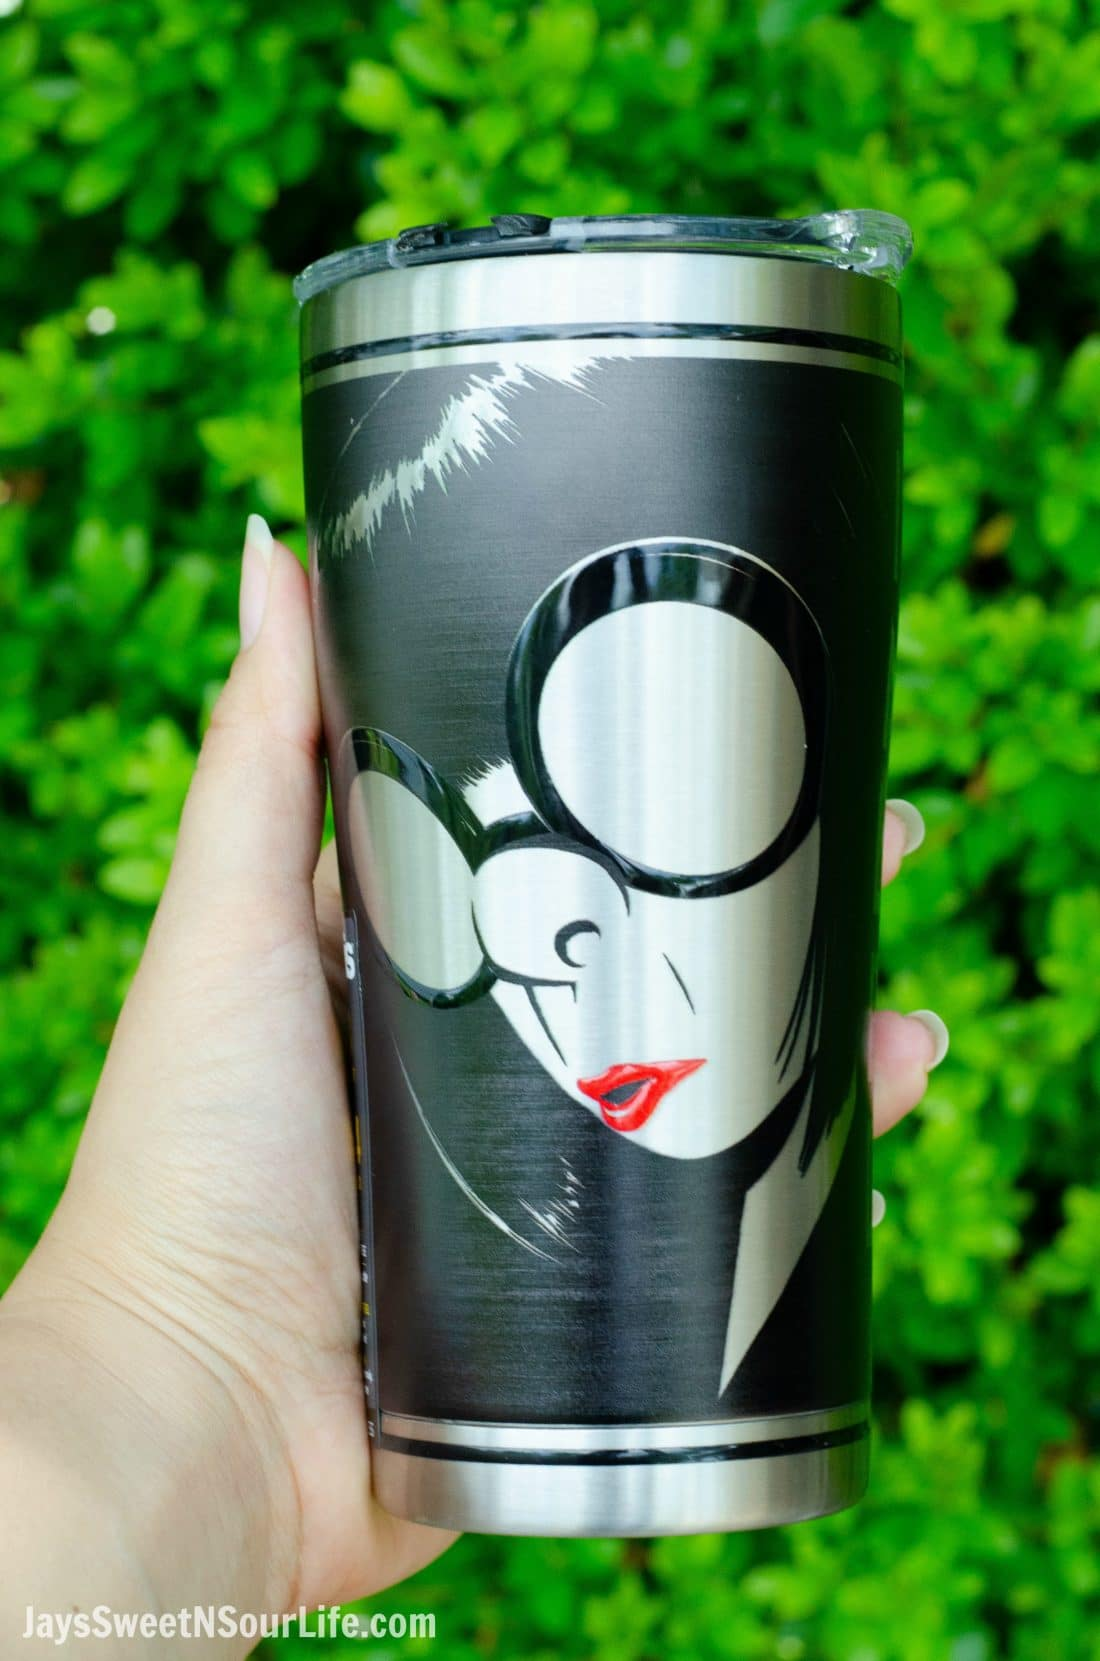 Incredibles 2 Edna Mode Tumbler. New Disney Pixars Incredibles 2 Toys + More | Incredibles 2 Gift Guide